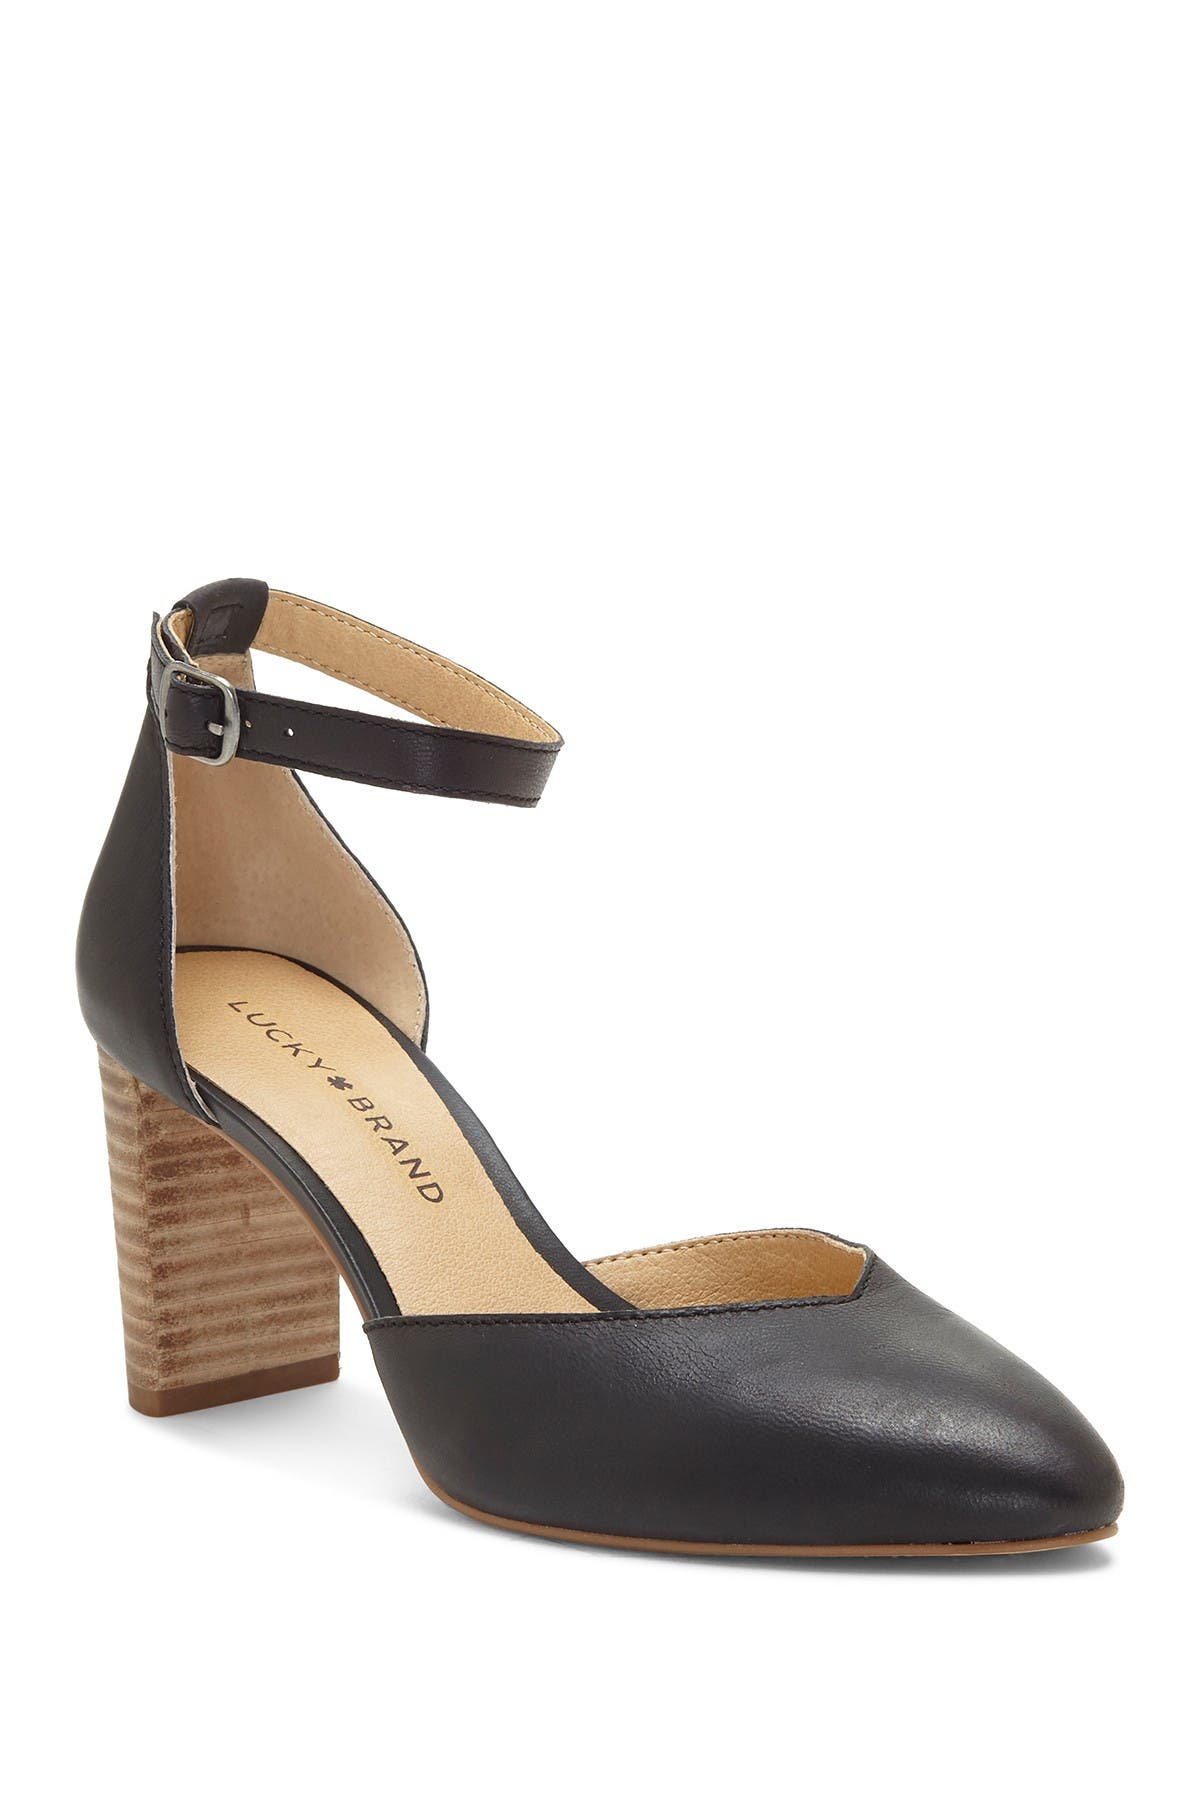 Image of Lucky Brand Mariannah Stack Heel Pump